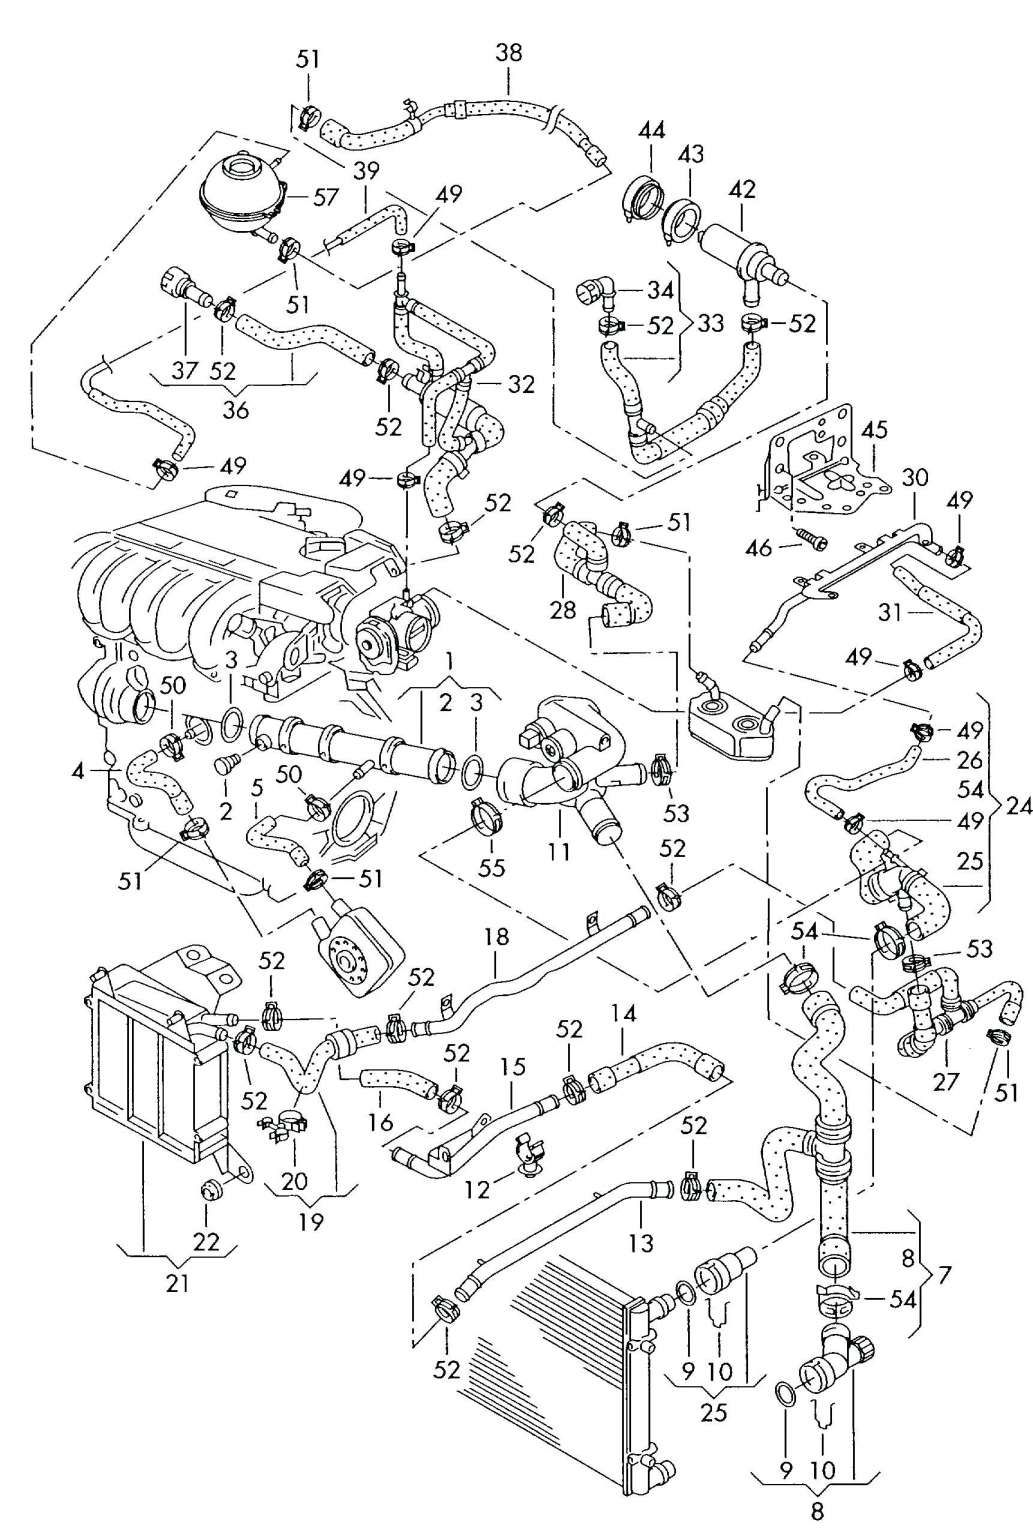 mk3 vr6 engine wiring diagram and jetta vr engine diagram - get wiring  diagram in 2020 | vw up, vw jetta, vr6 engine  pinterest